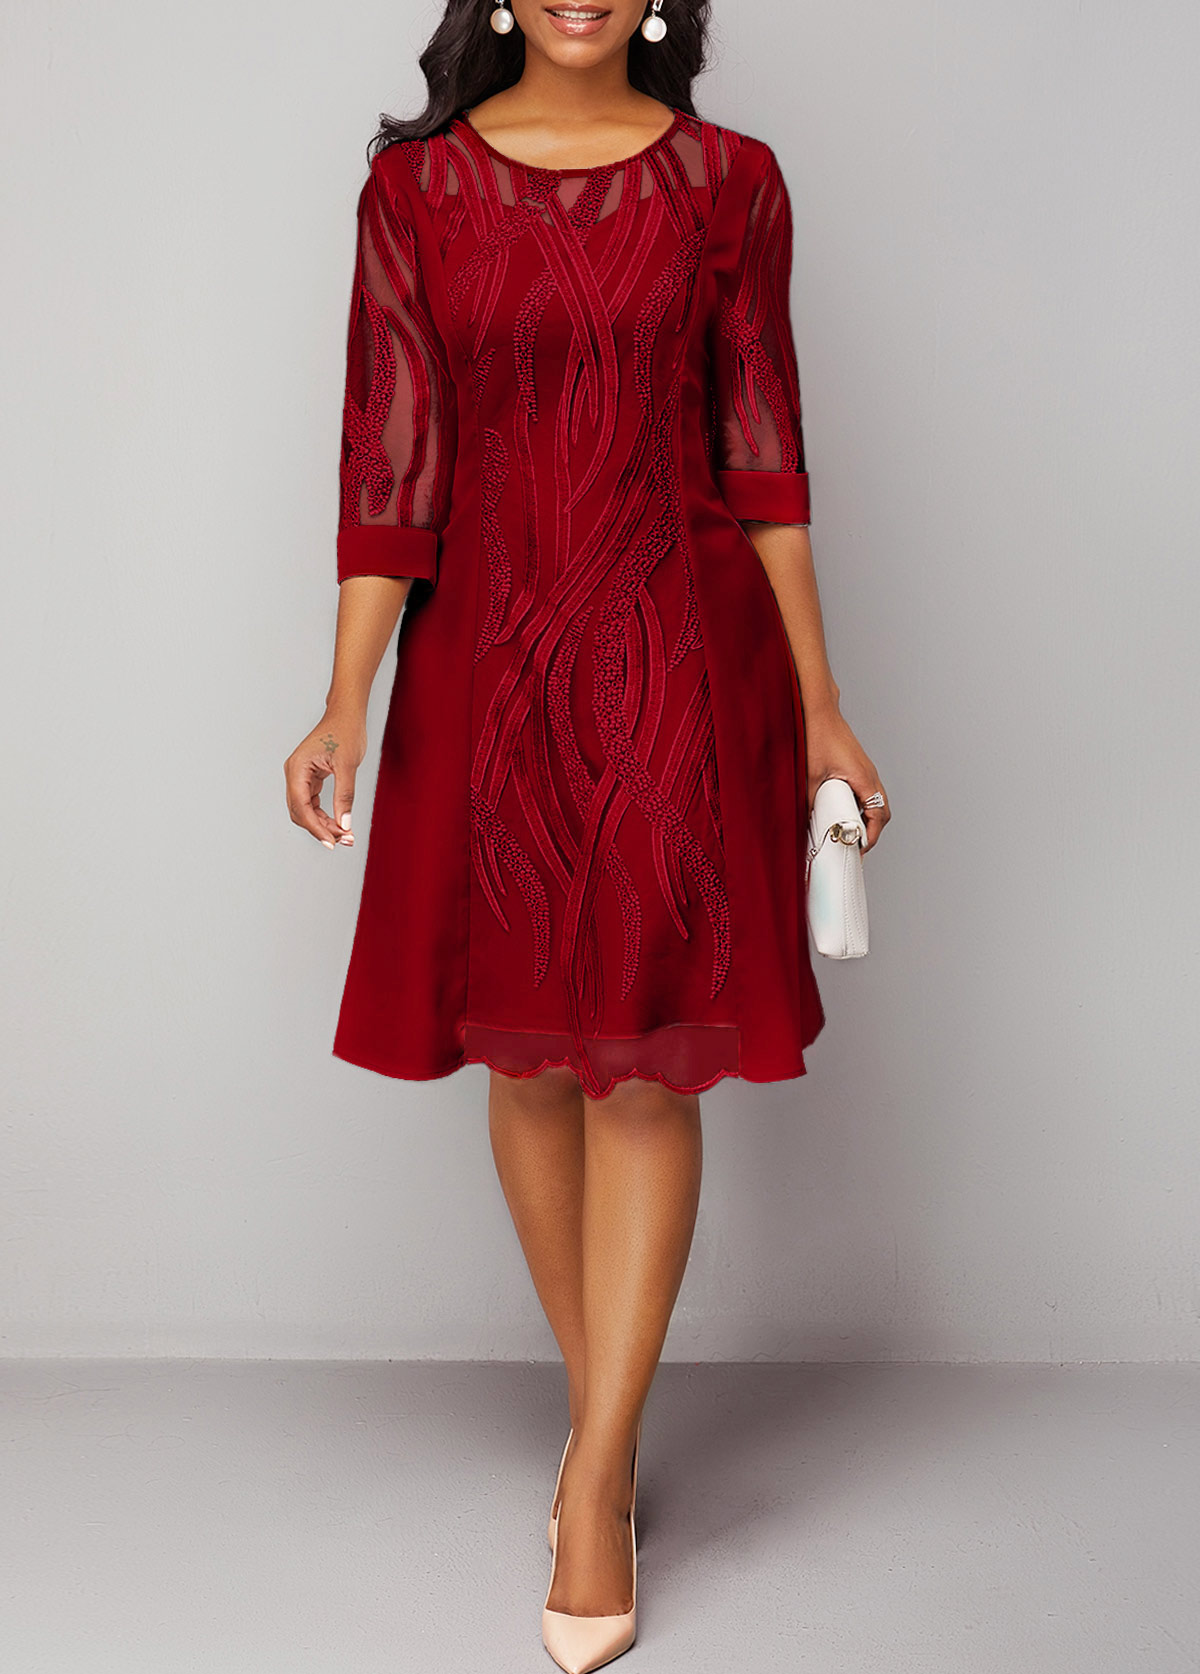 Wine Red Round Neck Back Zipper Lace Dress